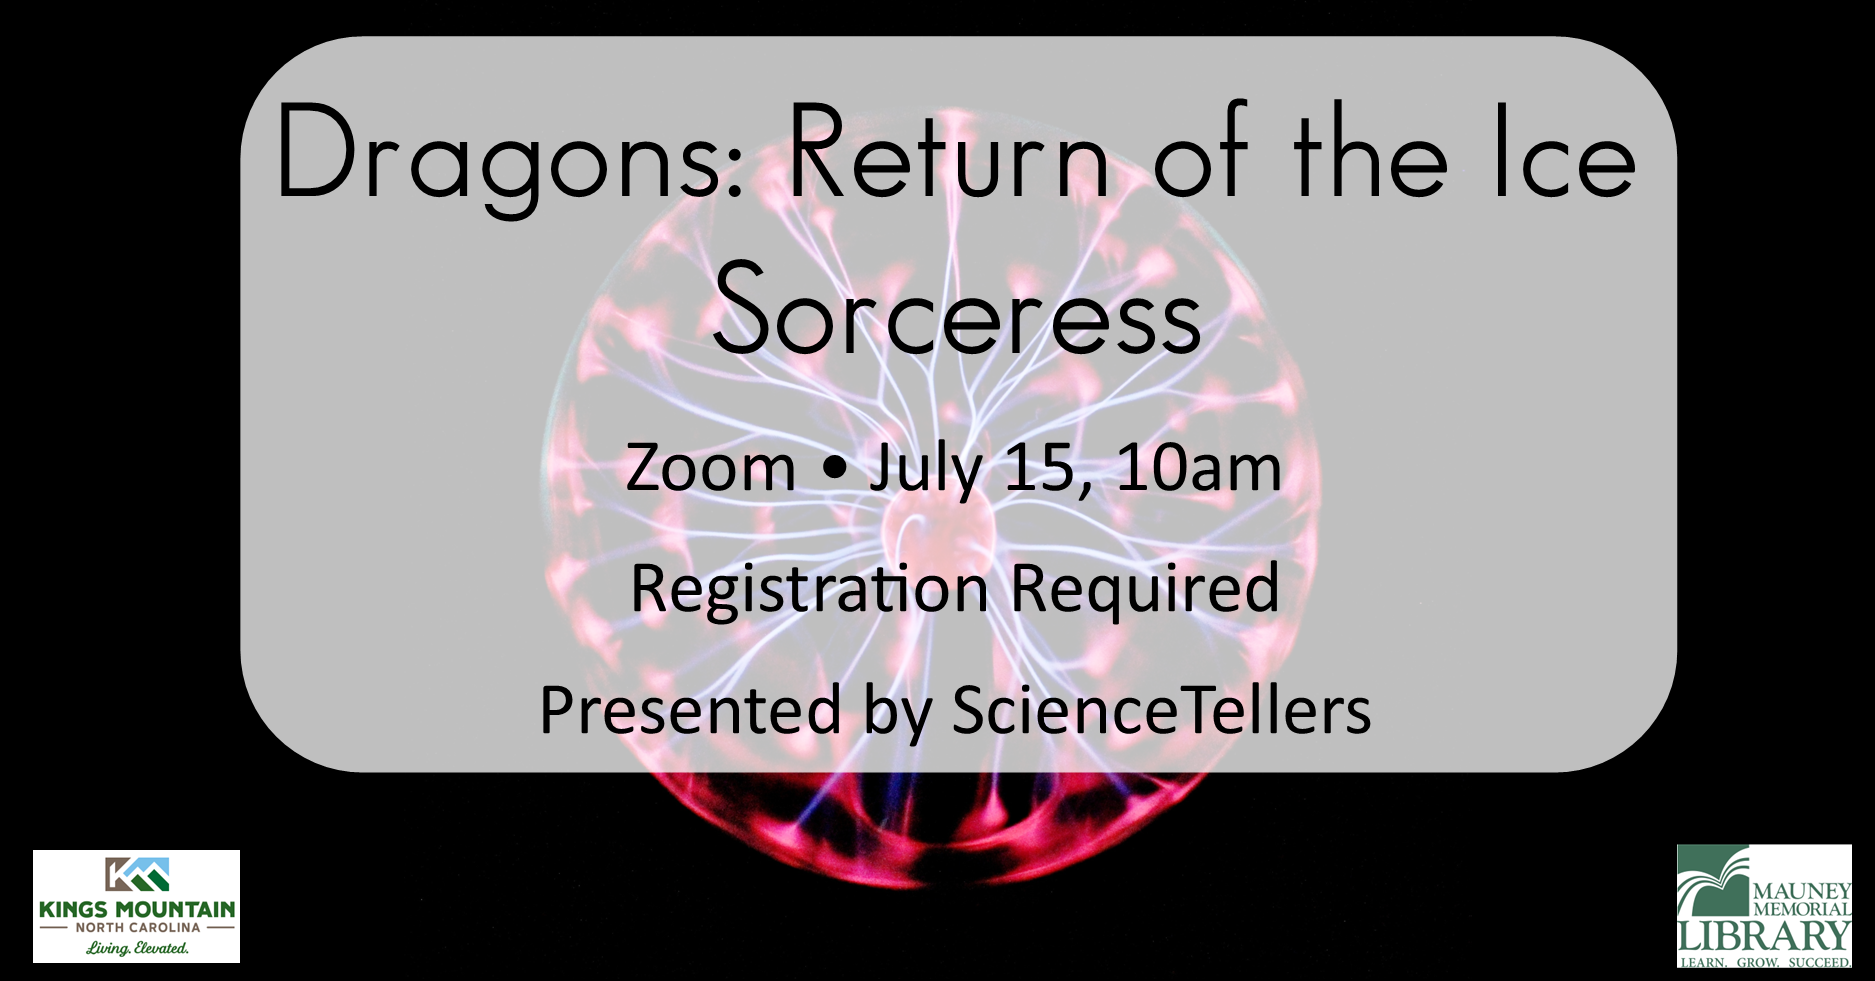 Dragons: Return of the Ice Sorceress